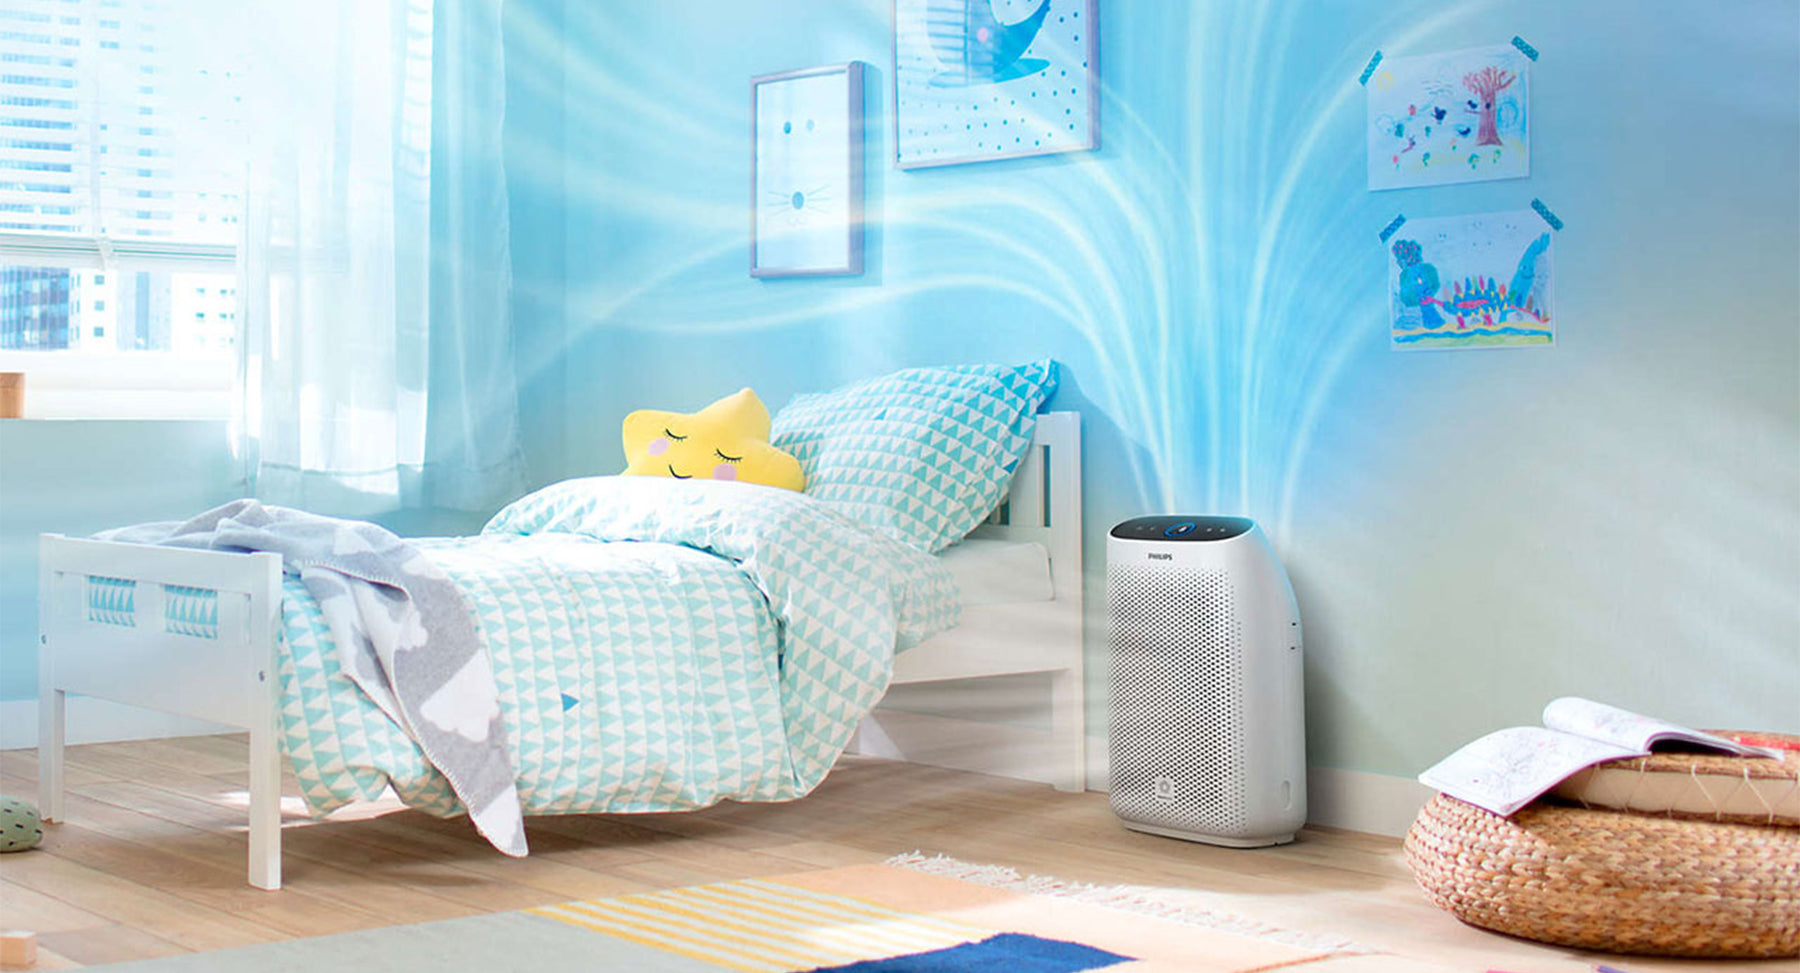 Philips 1000i Connected Air Purifier filters 99.97% of invisible viruses, allergens and pollutants from the air in your home